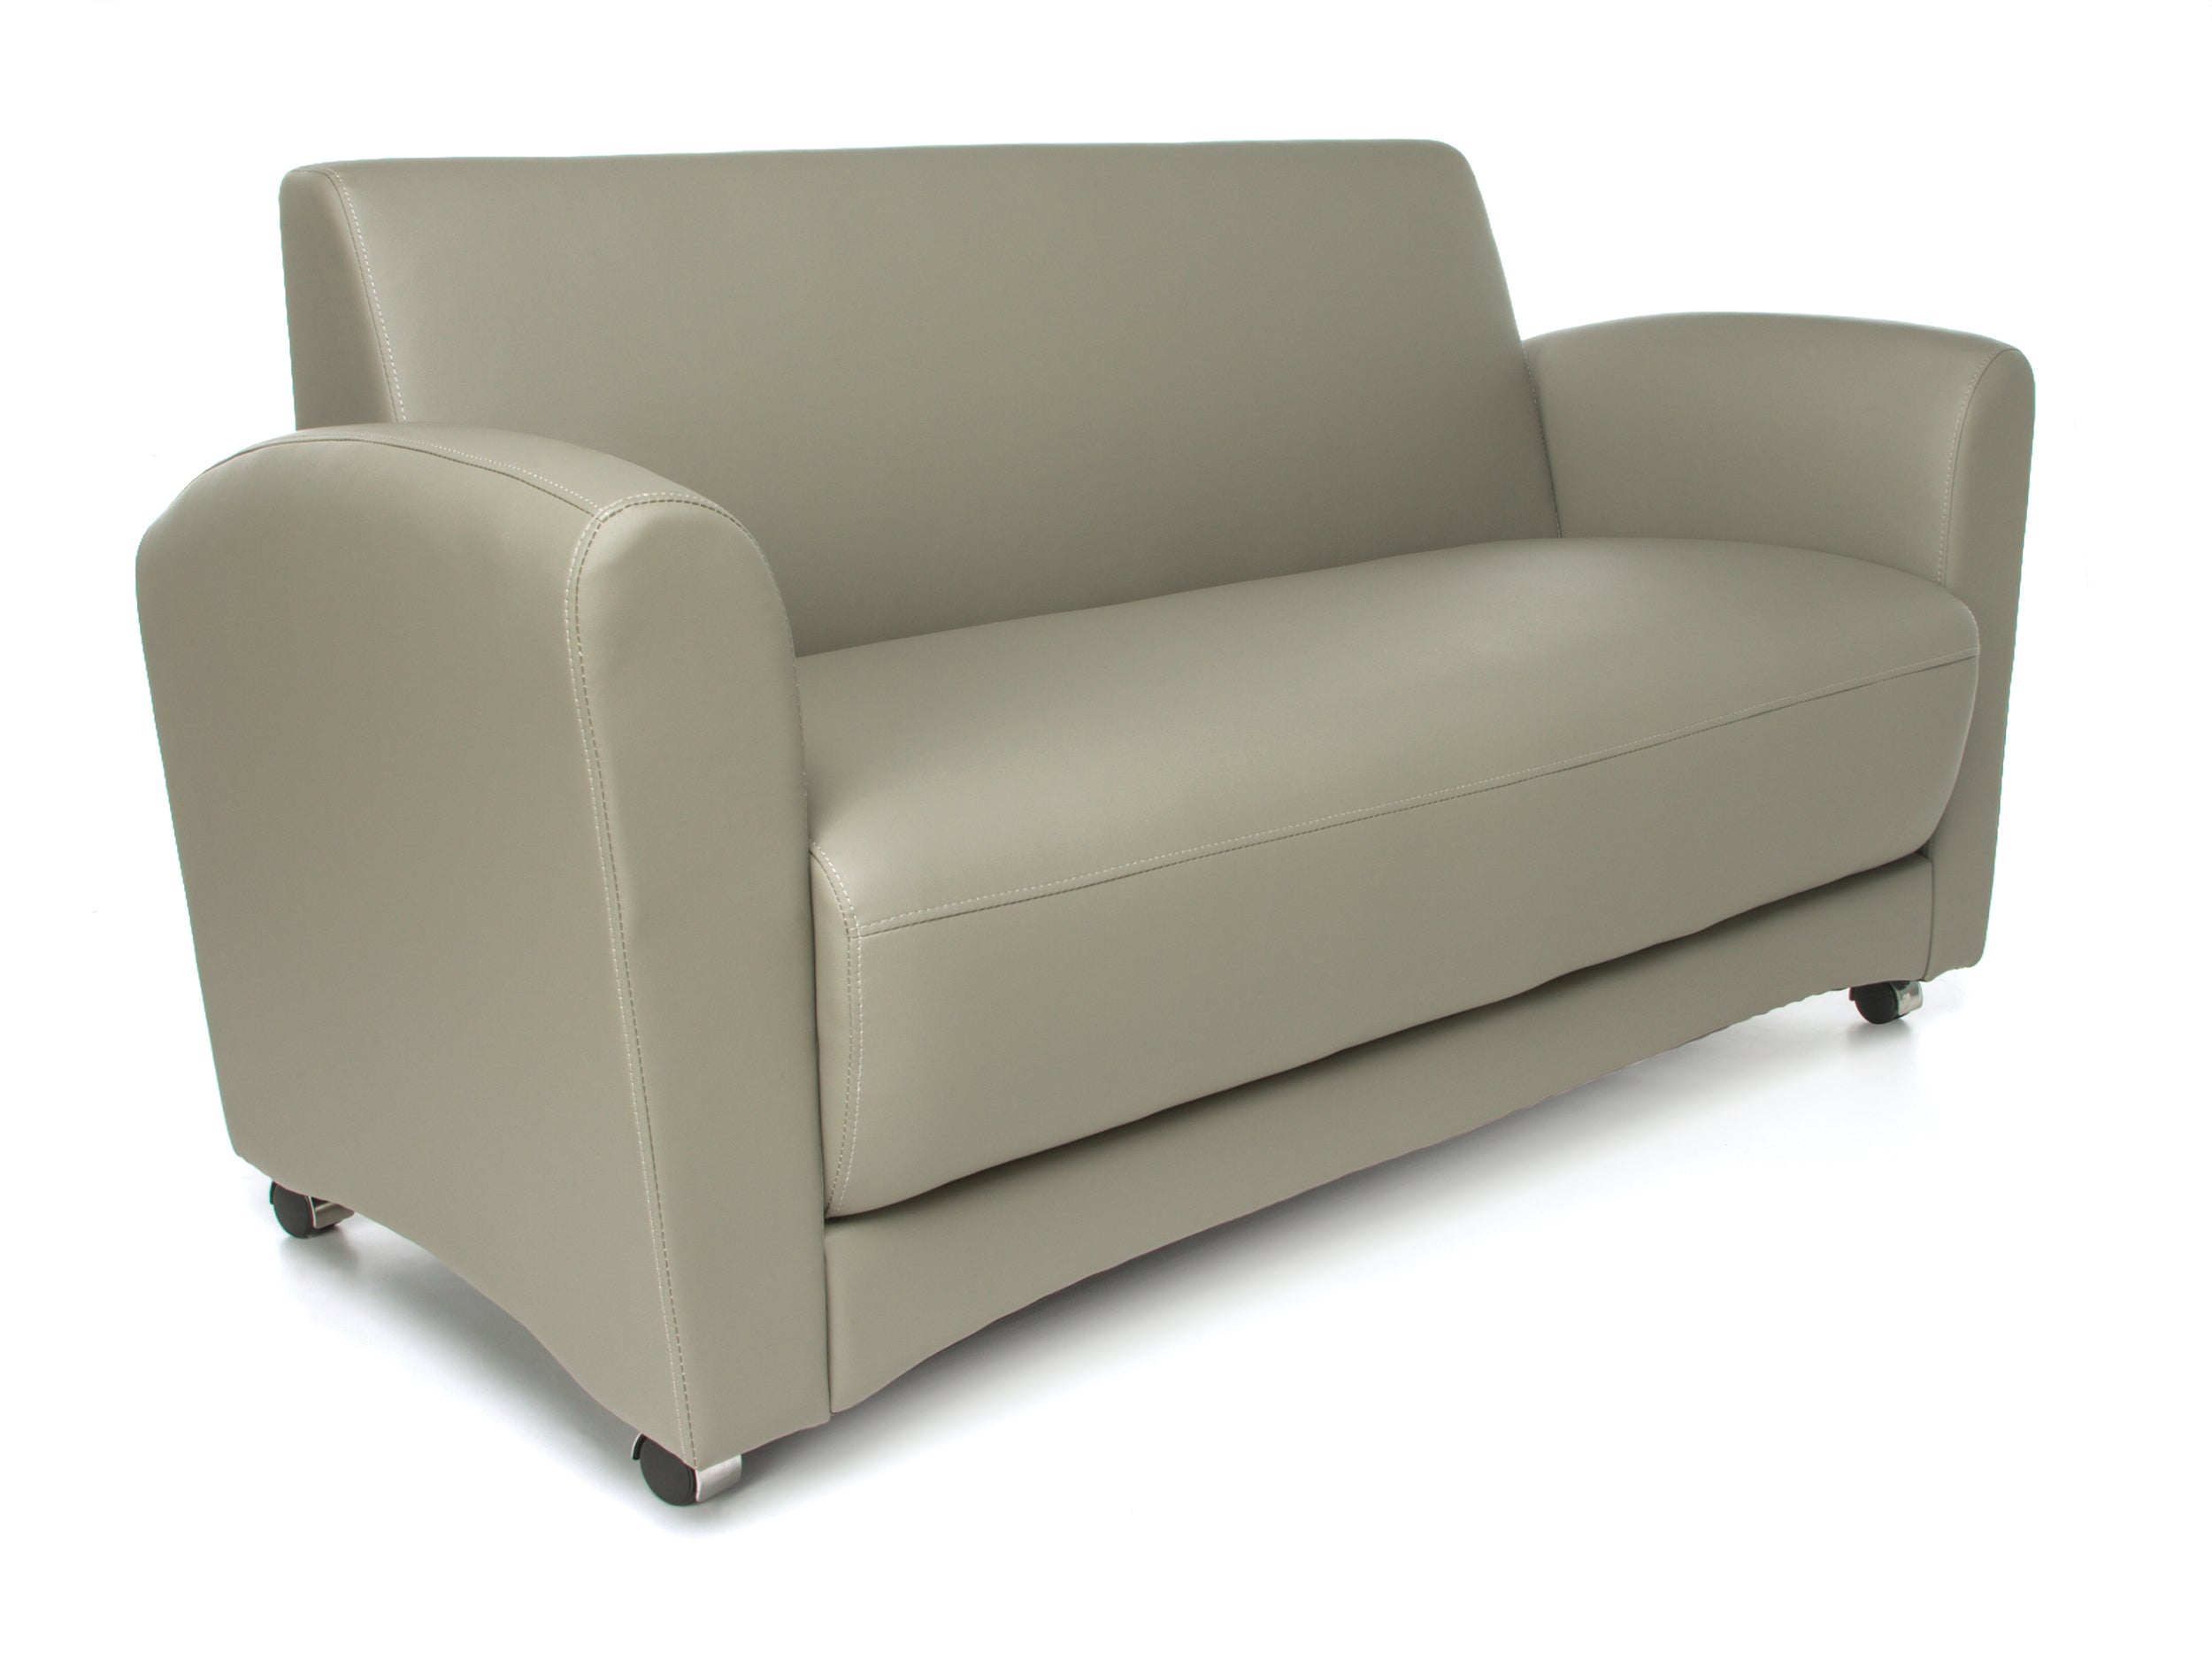 Ofminc Model 822-NT InterPlay Series Double Sofa No Tablet